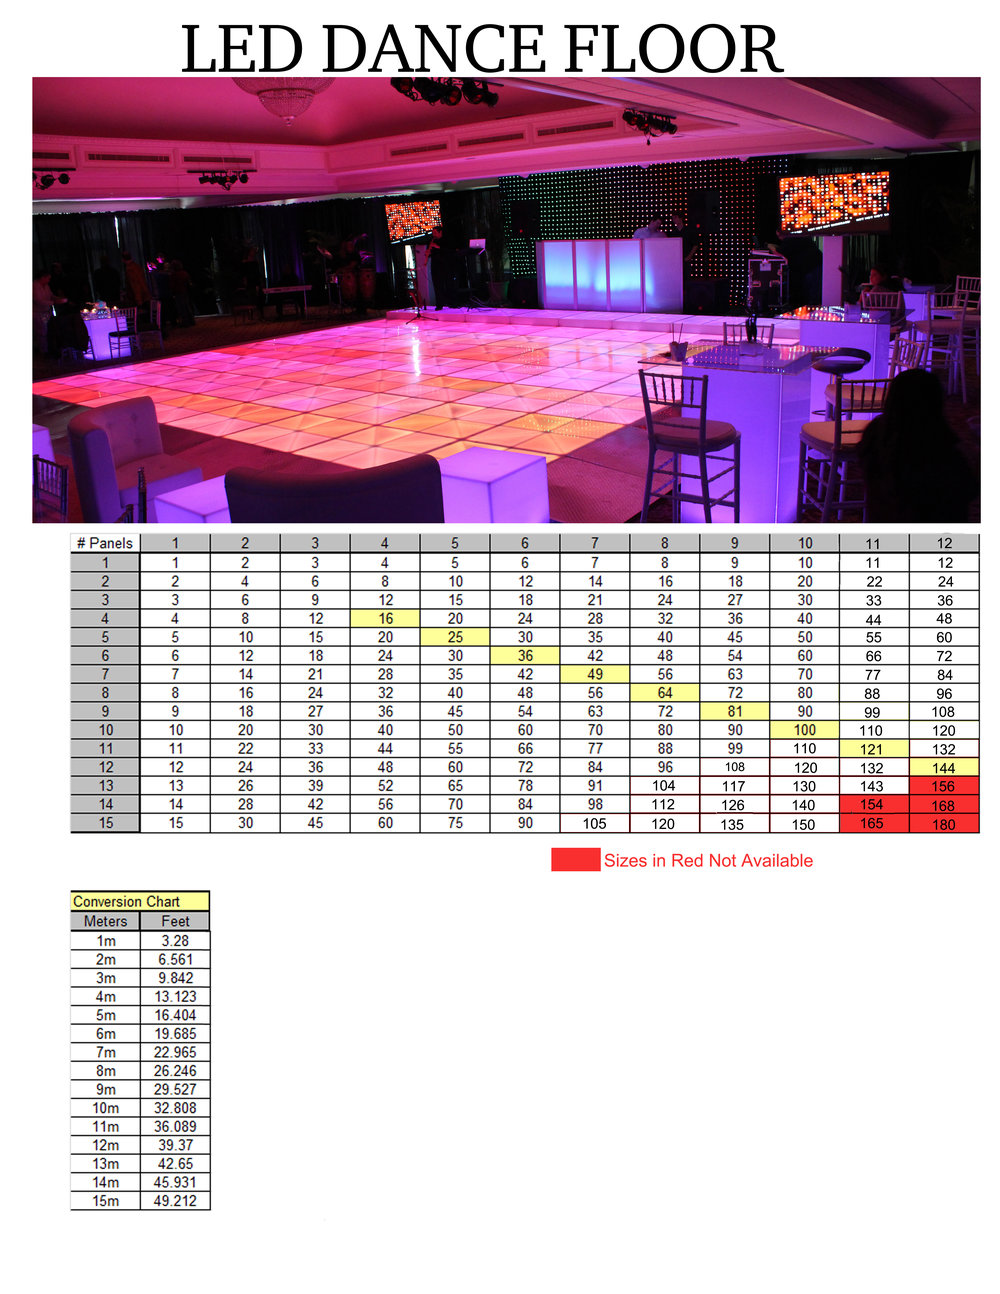 008-P8_LED Dance Floor Rentals 2.jpg